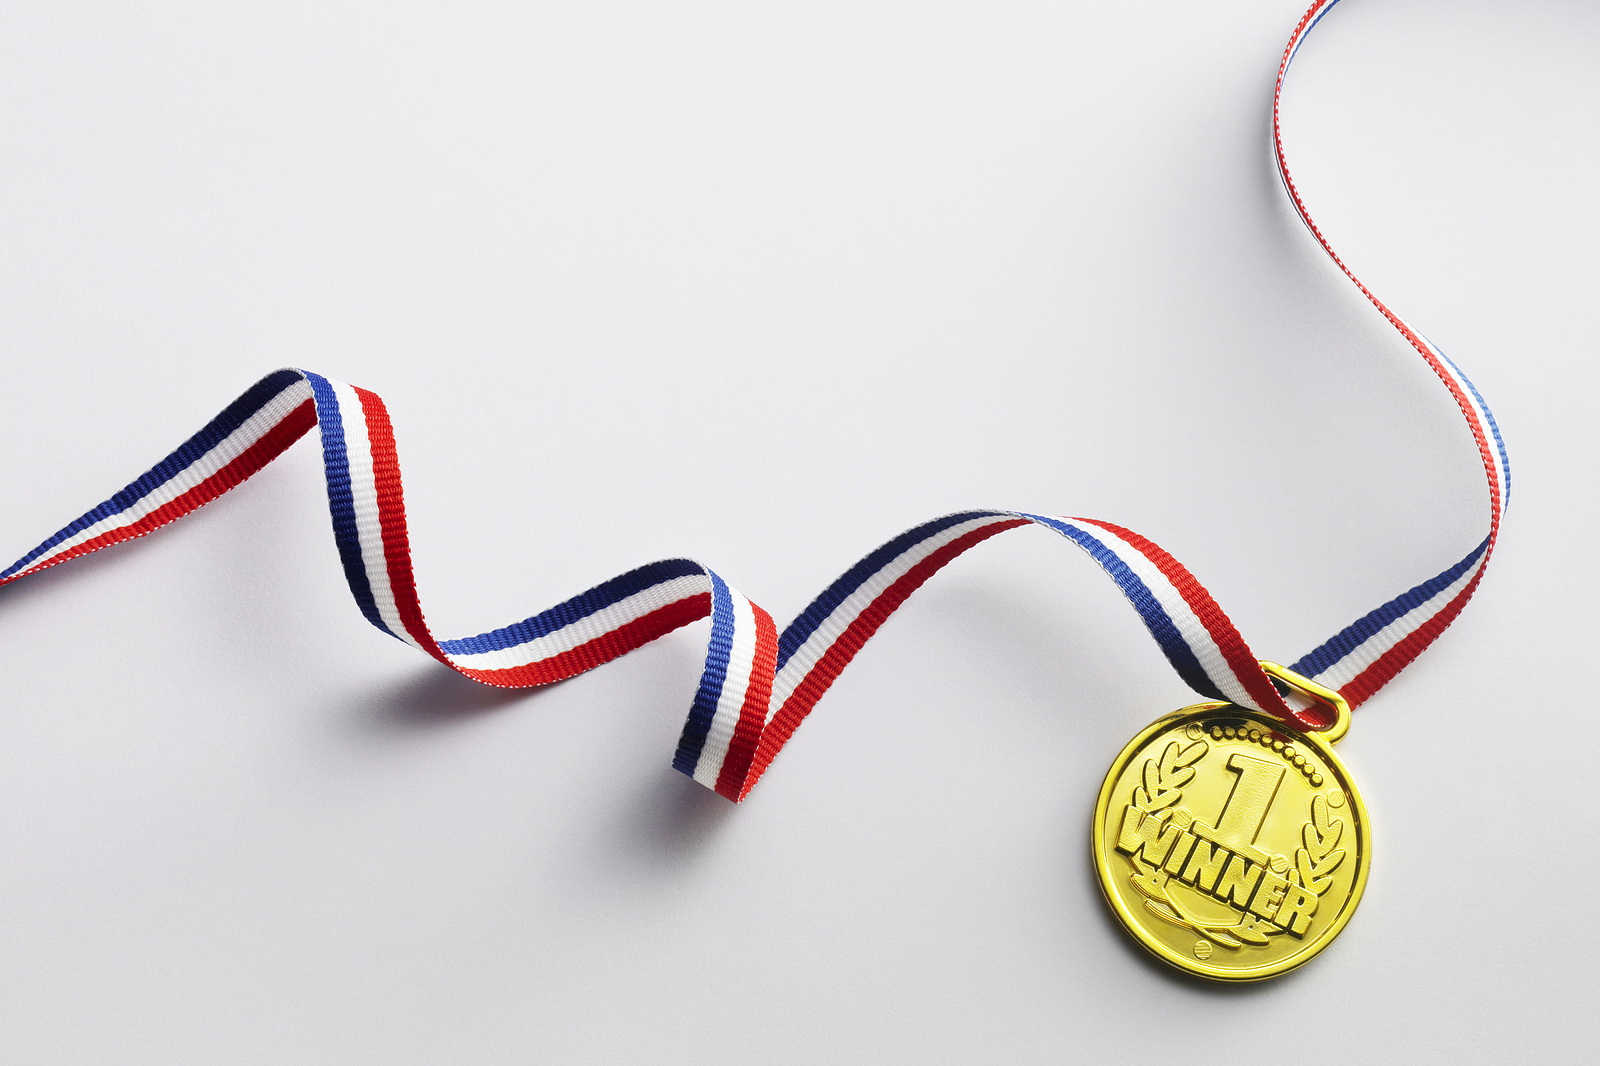 What can we learn from gold medal winners?